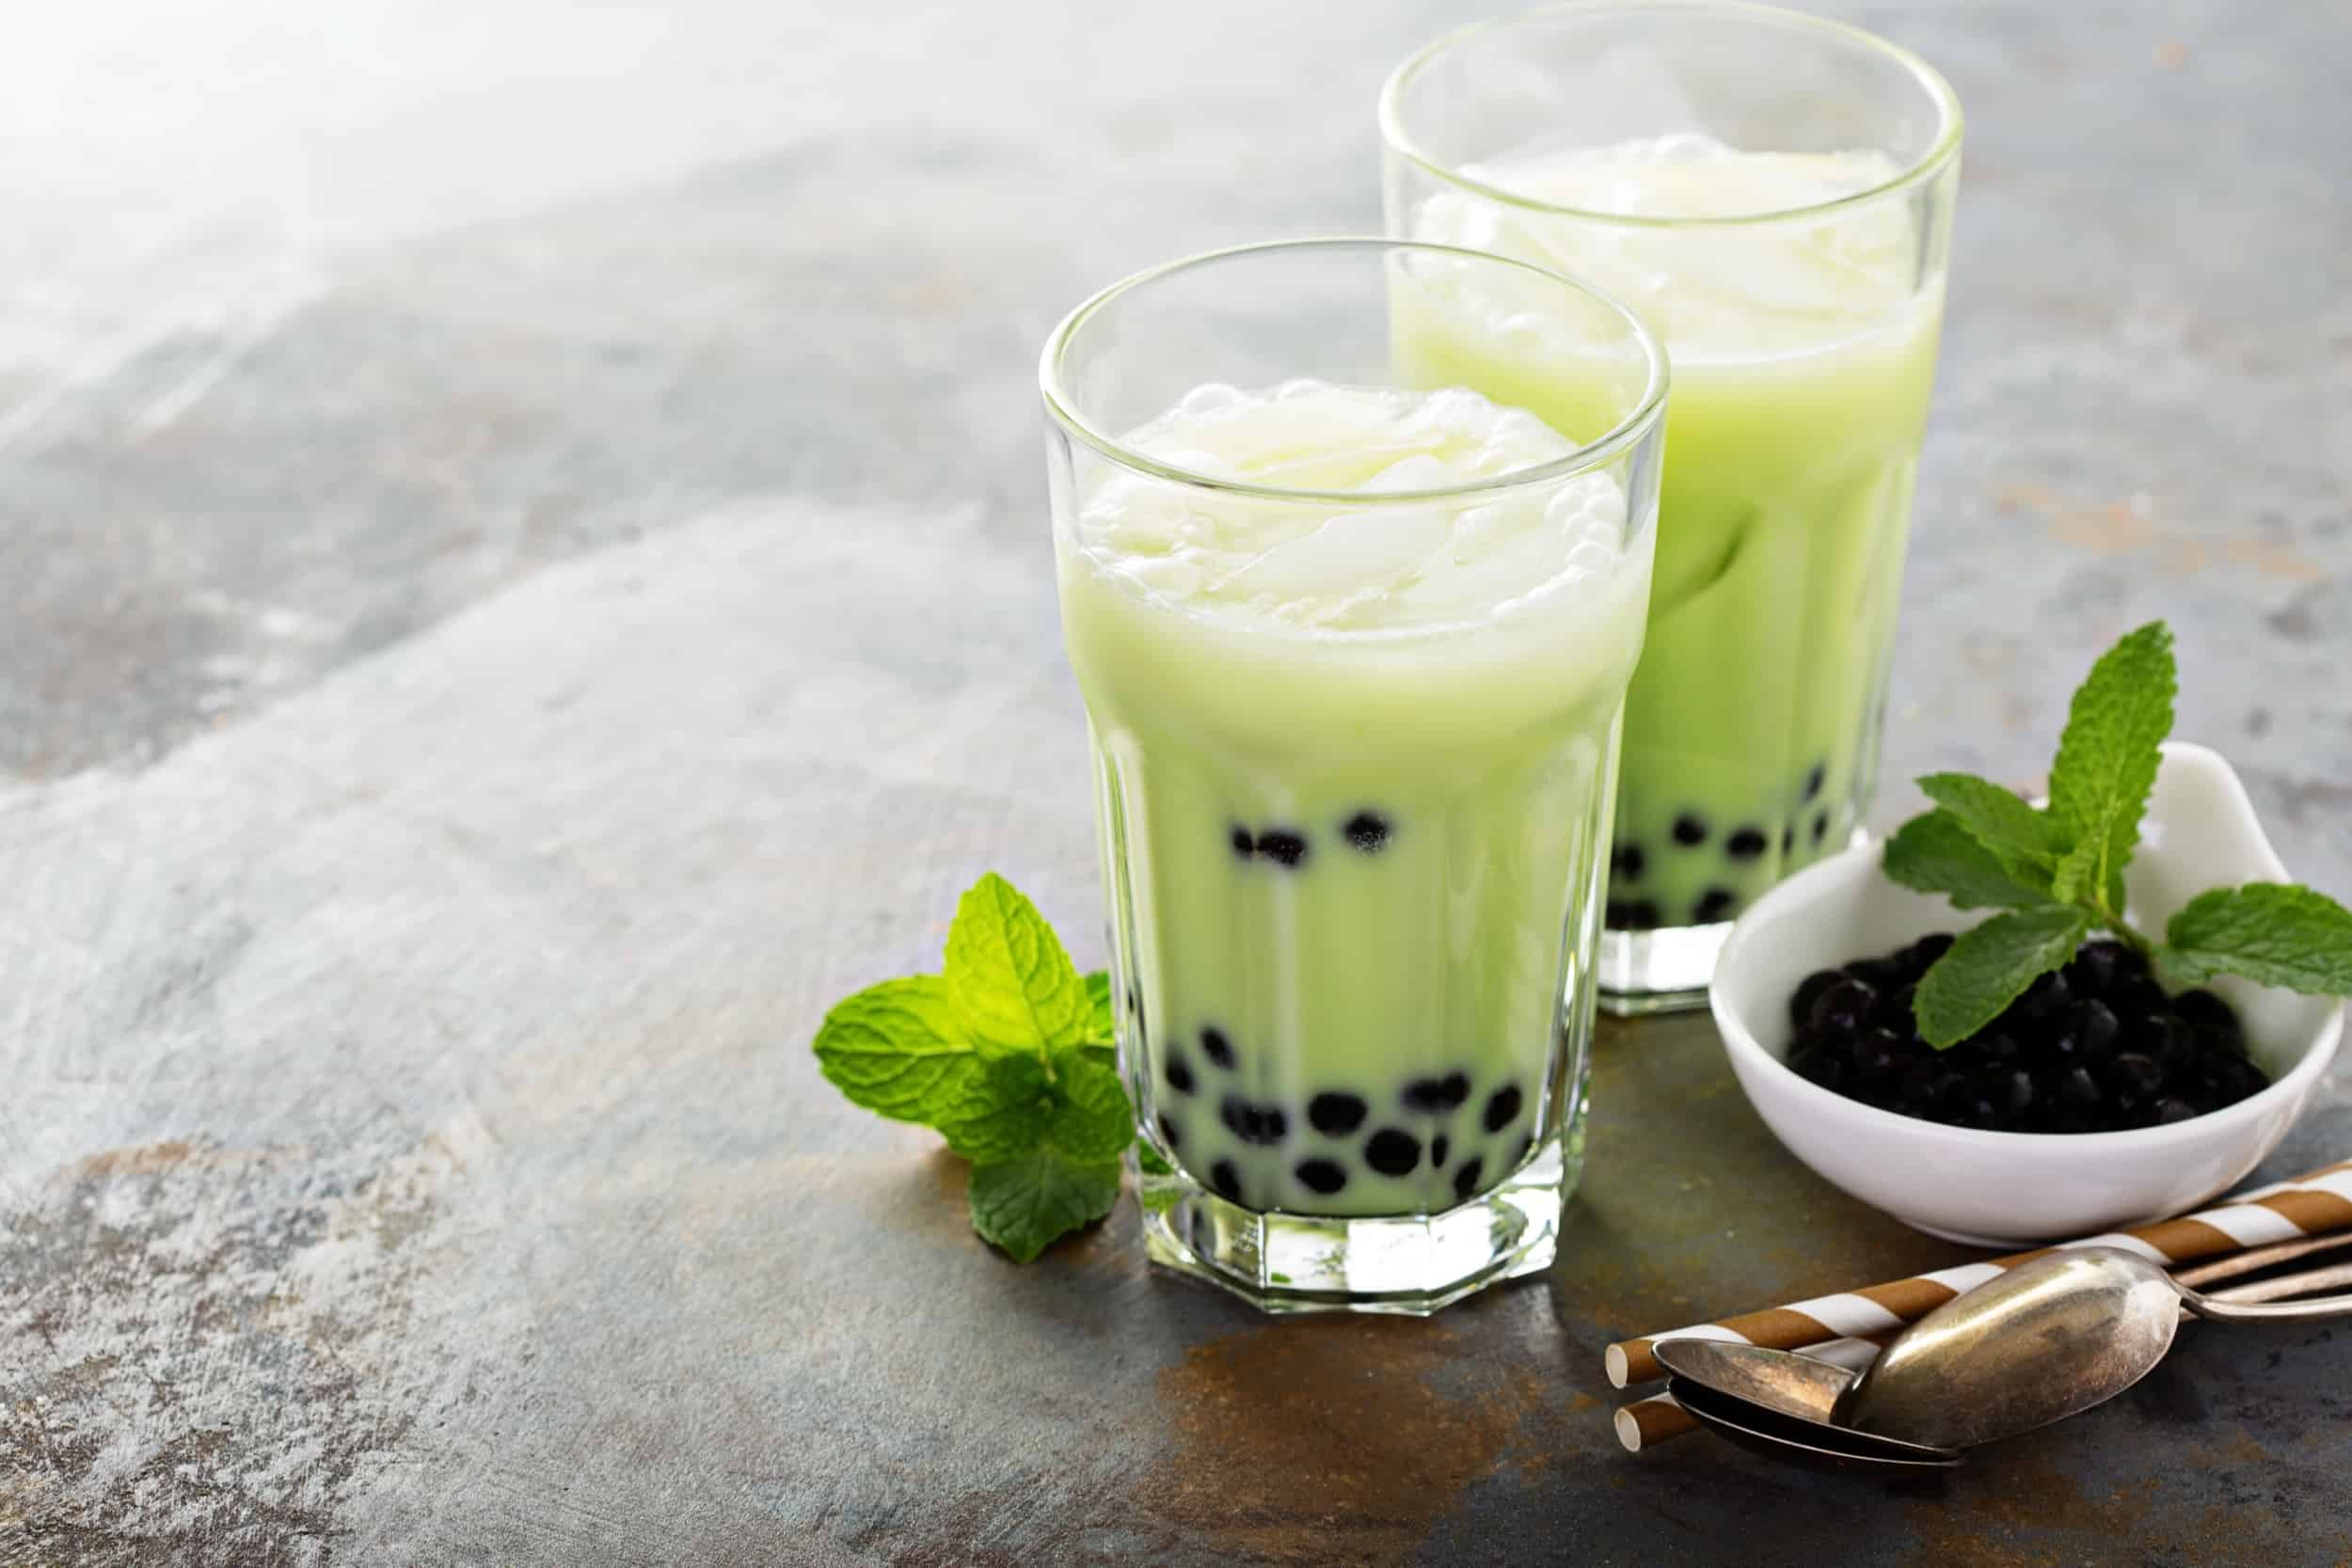 green-milk-tea-7537267